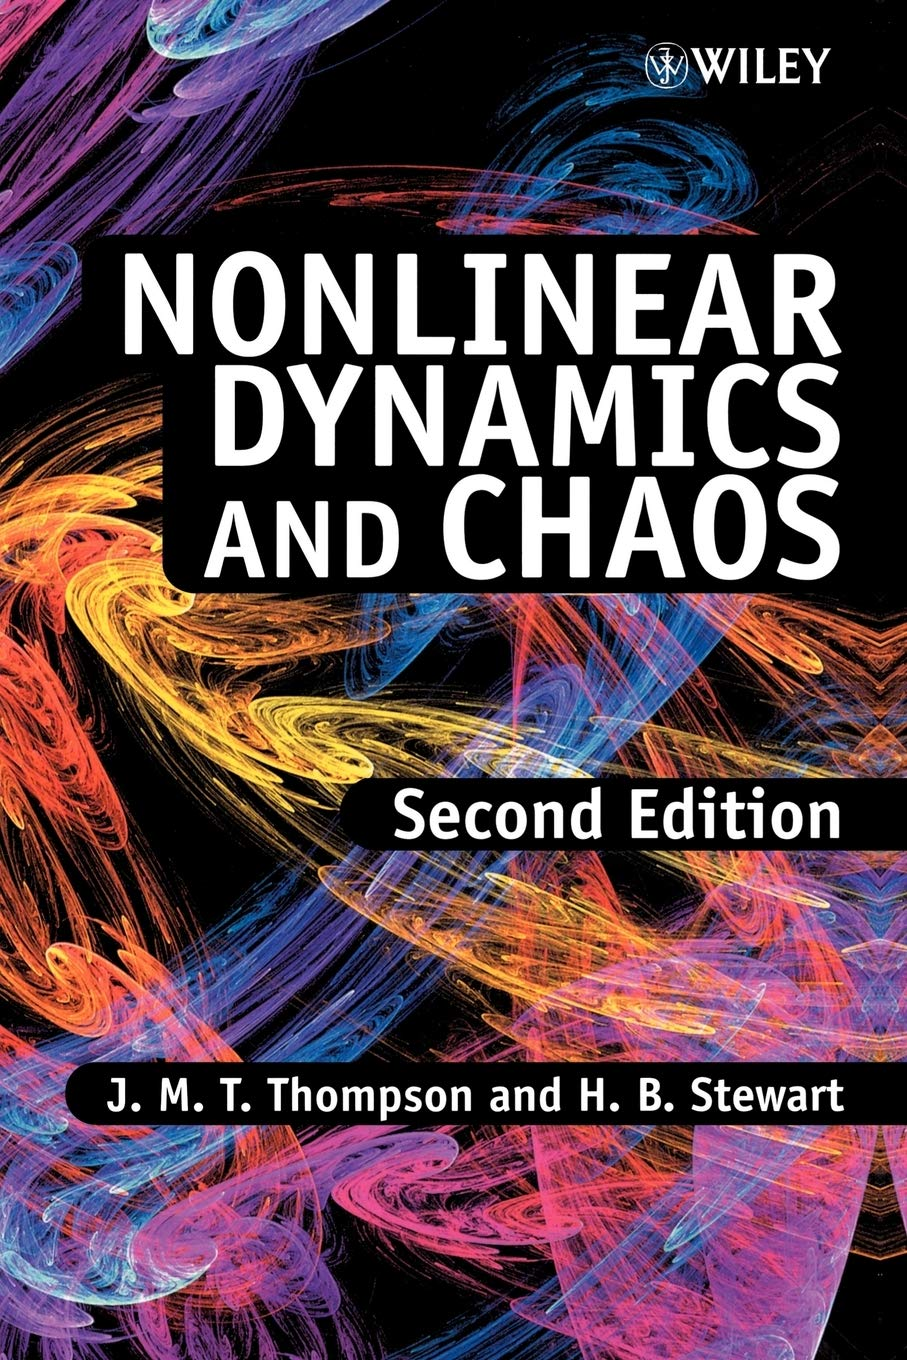 Download Nonlinear Dynamics & Chaos 2e 